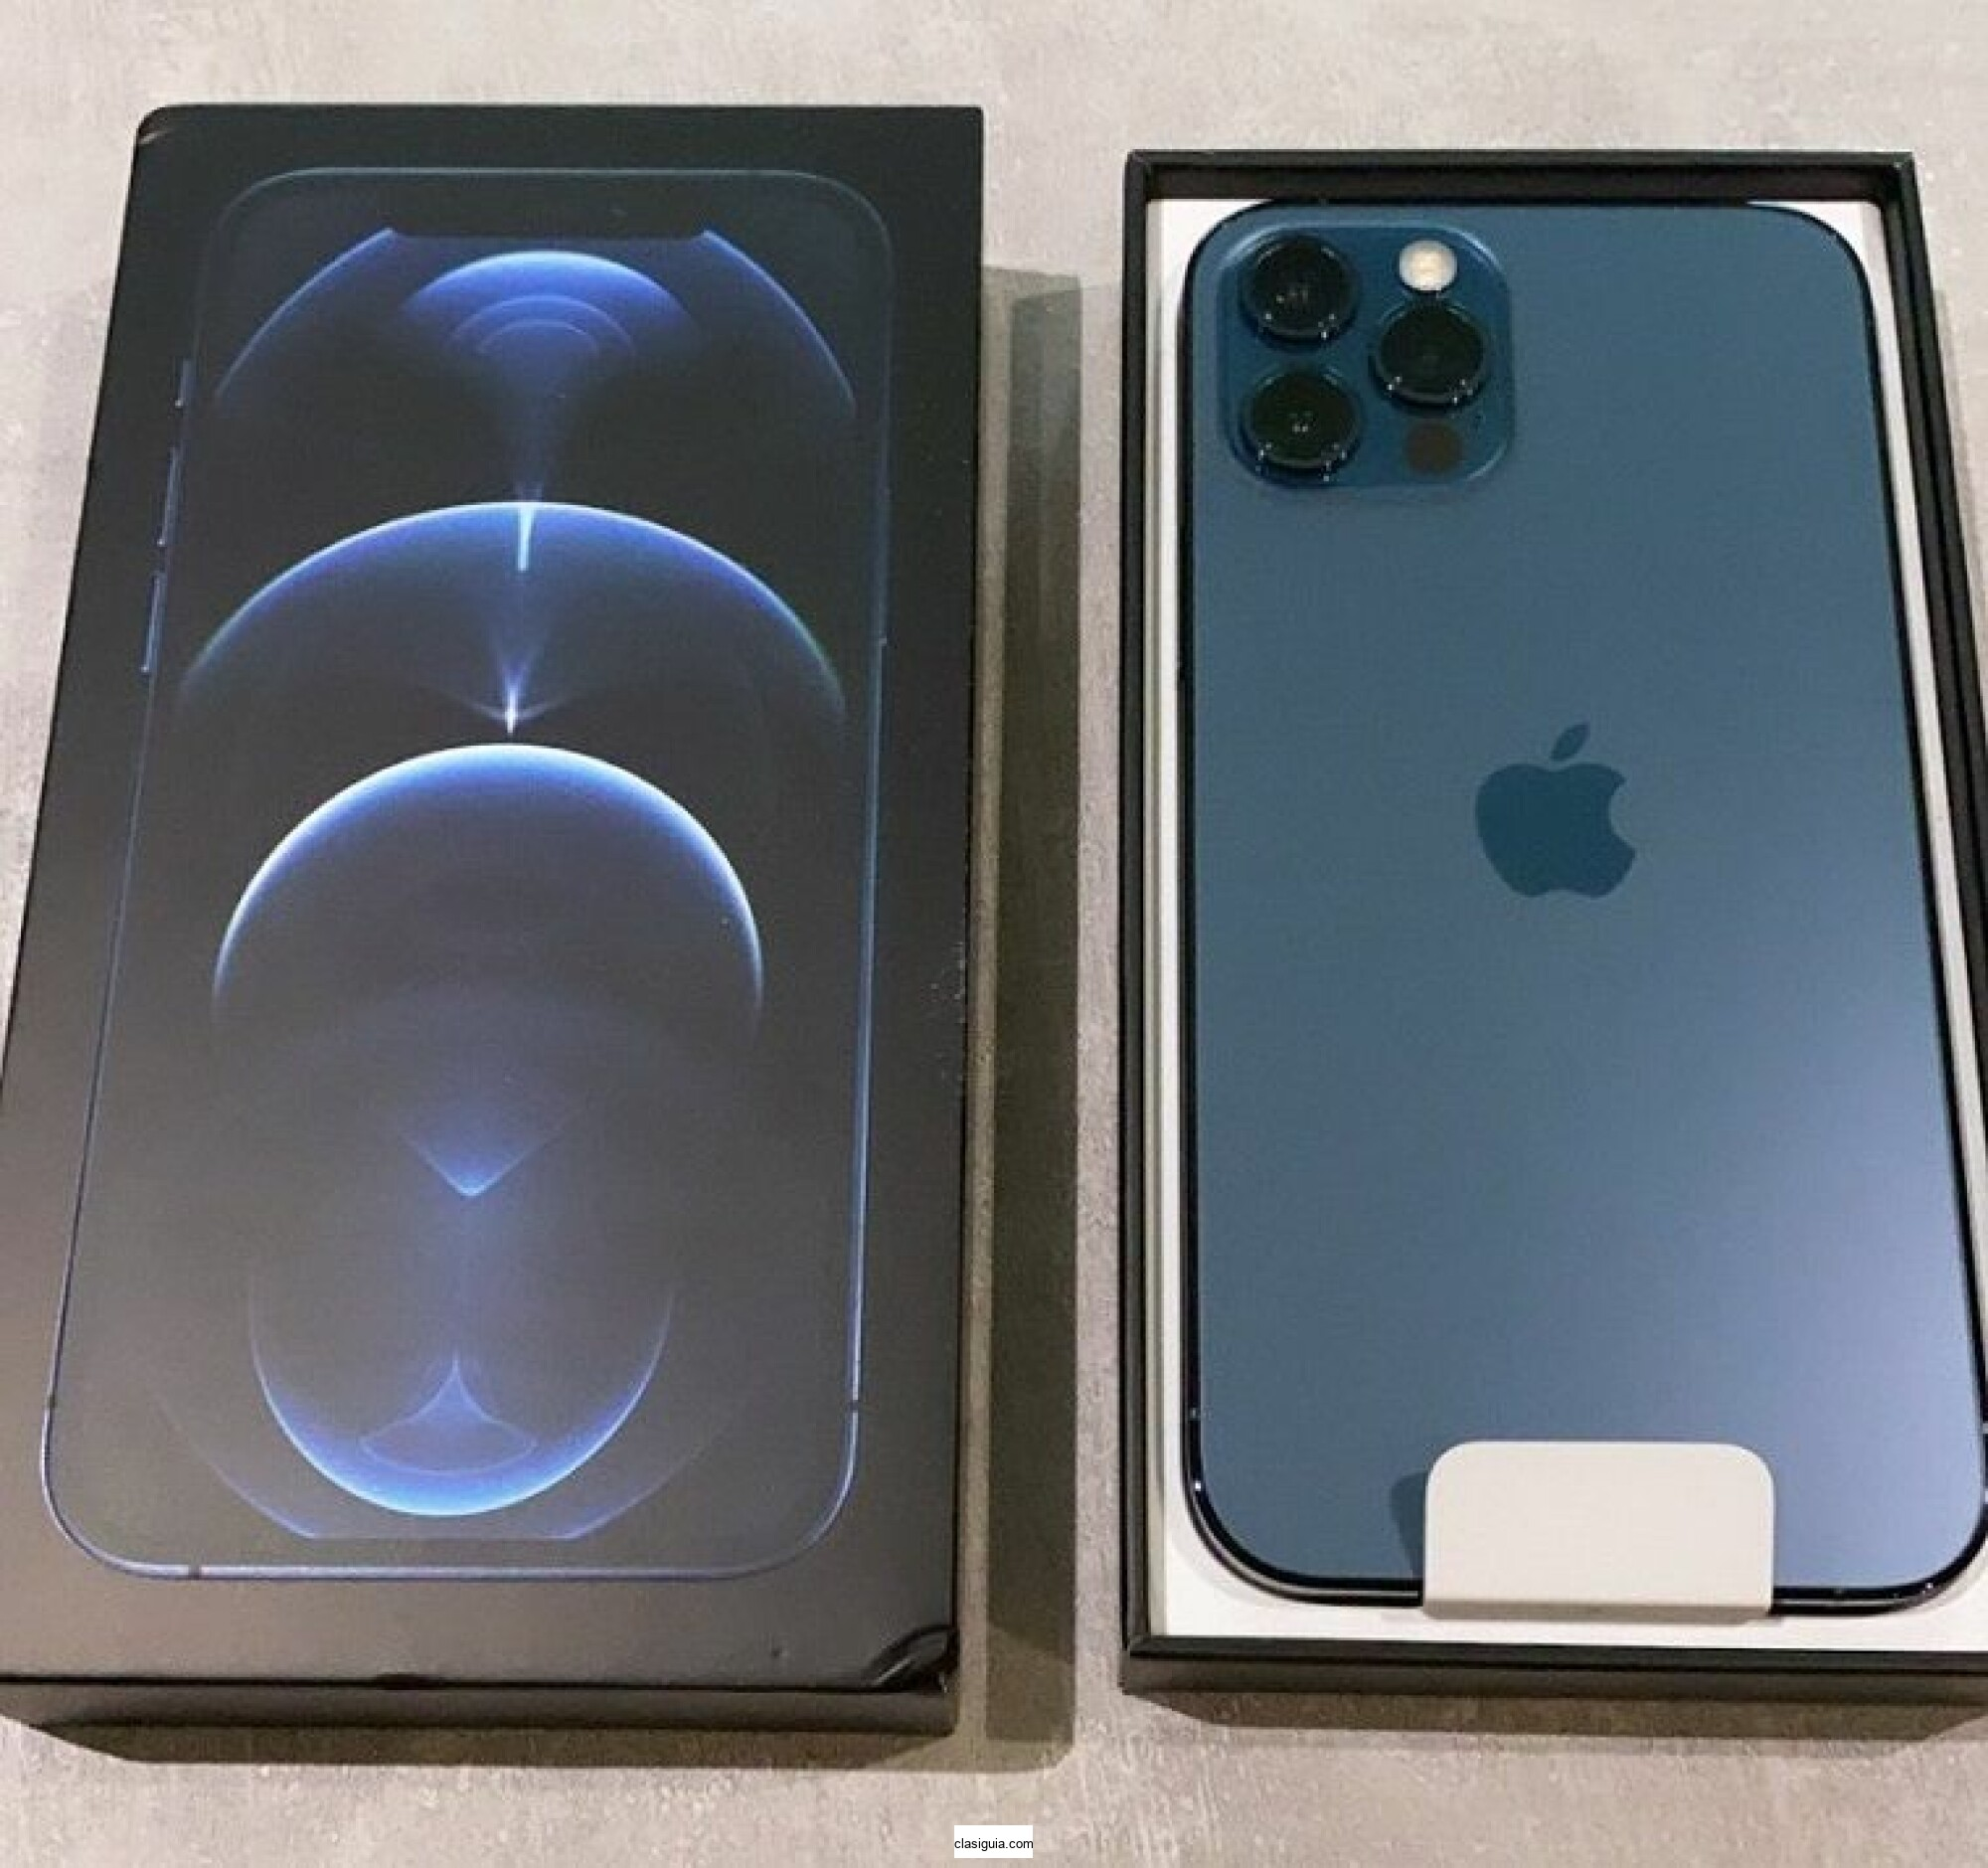 Compre Apple iPhone 12 Pro, iPhone 11 Pro 512GB Whatsapp Chat: +13072969231